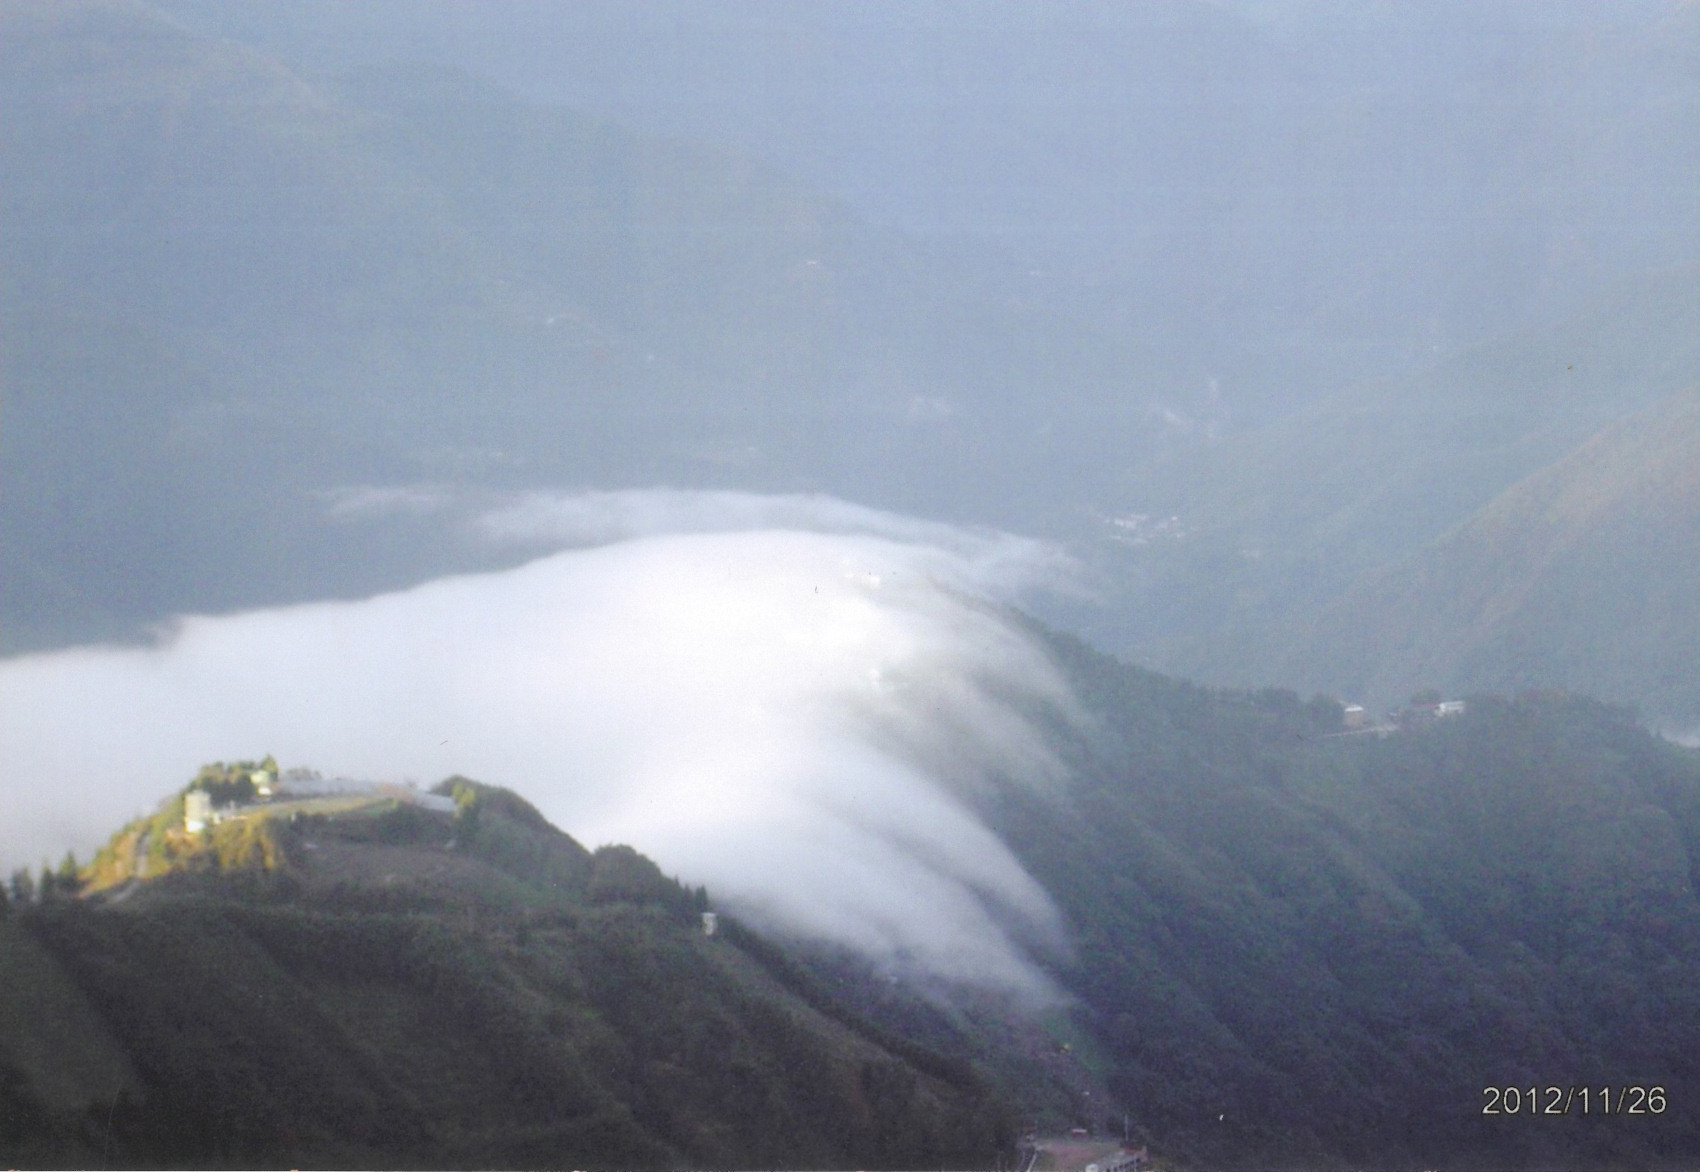 clouds-spilling-over-mountains-in-la-la-shan